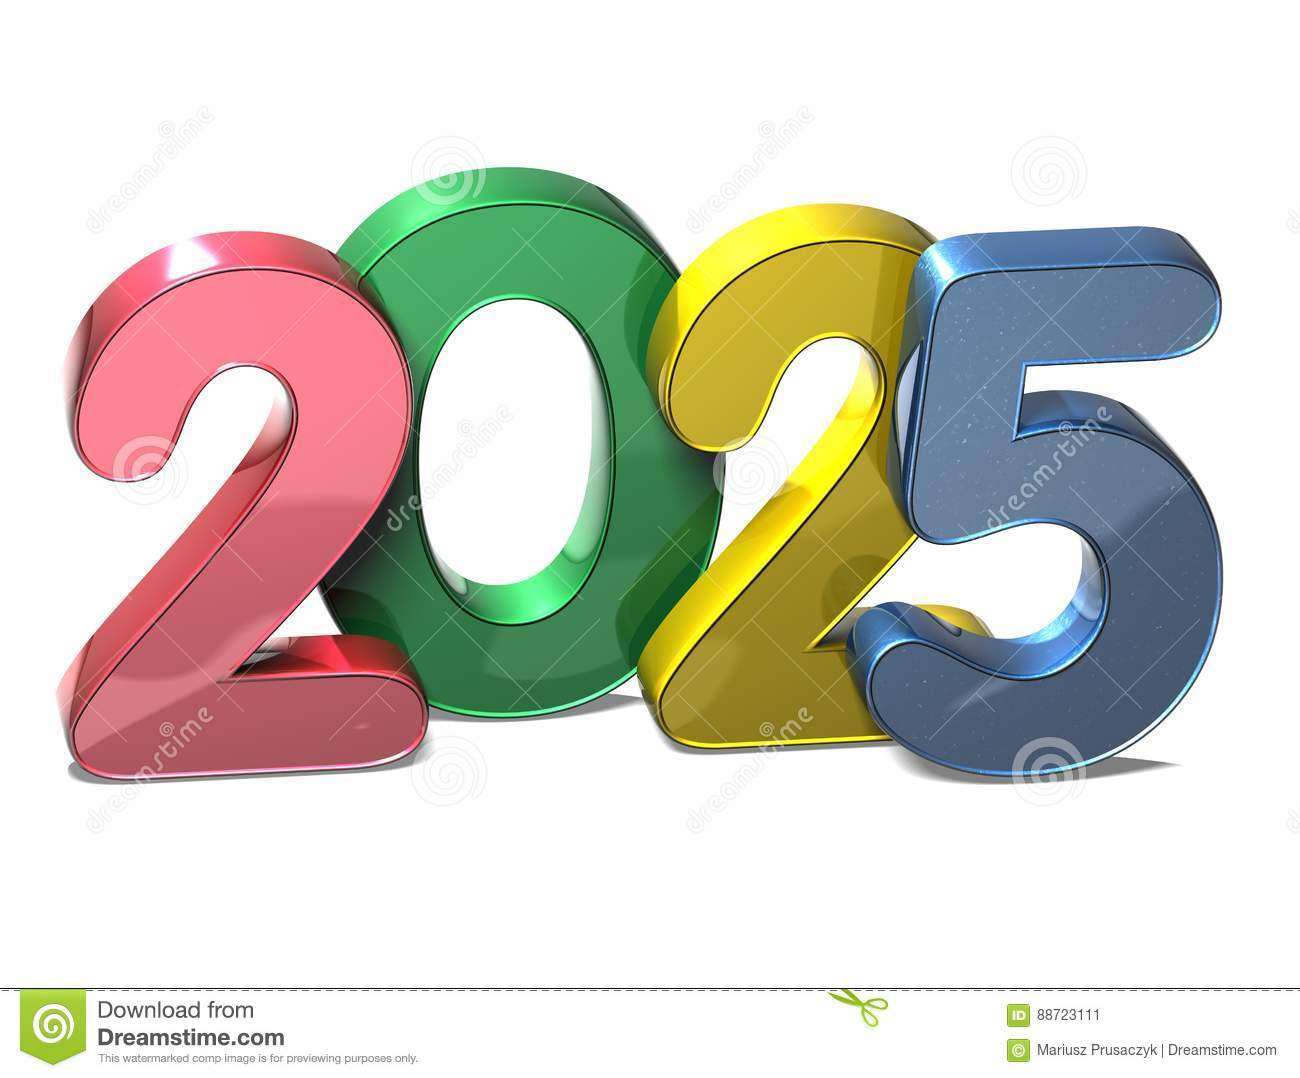 3D Number New Year 2025 on white background